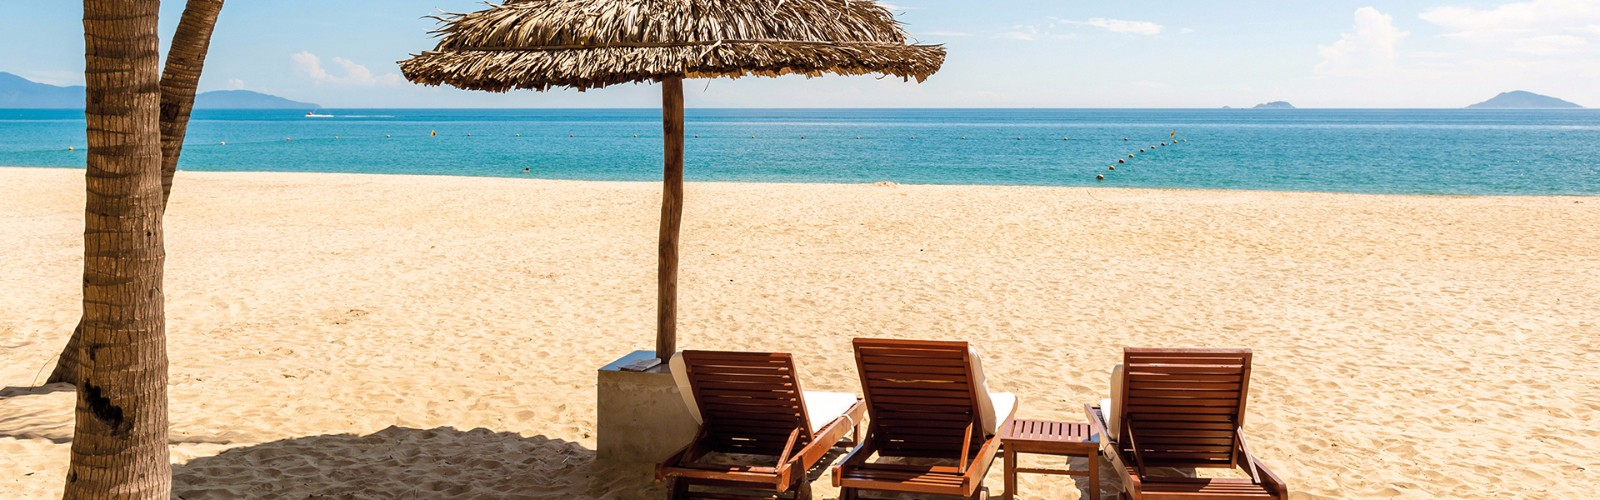 Hoi An Beach Stay tour